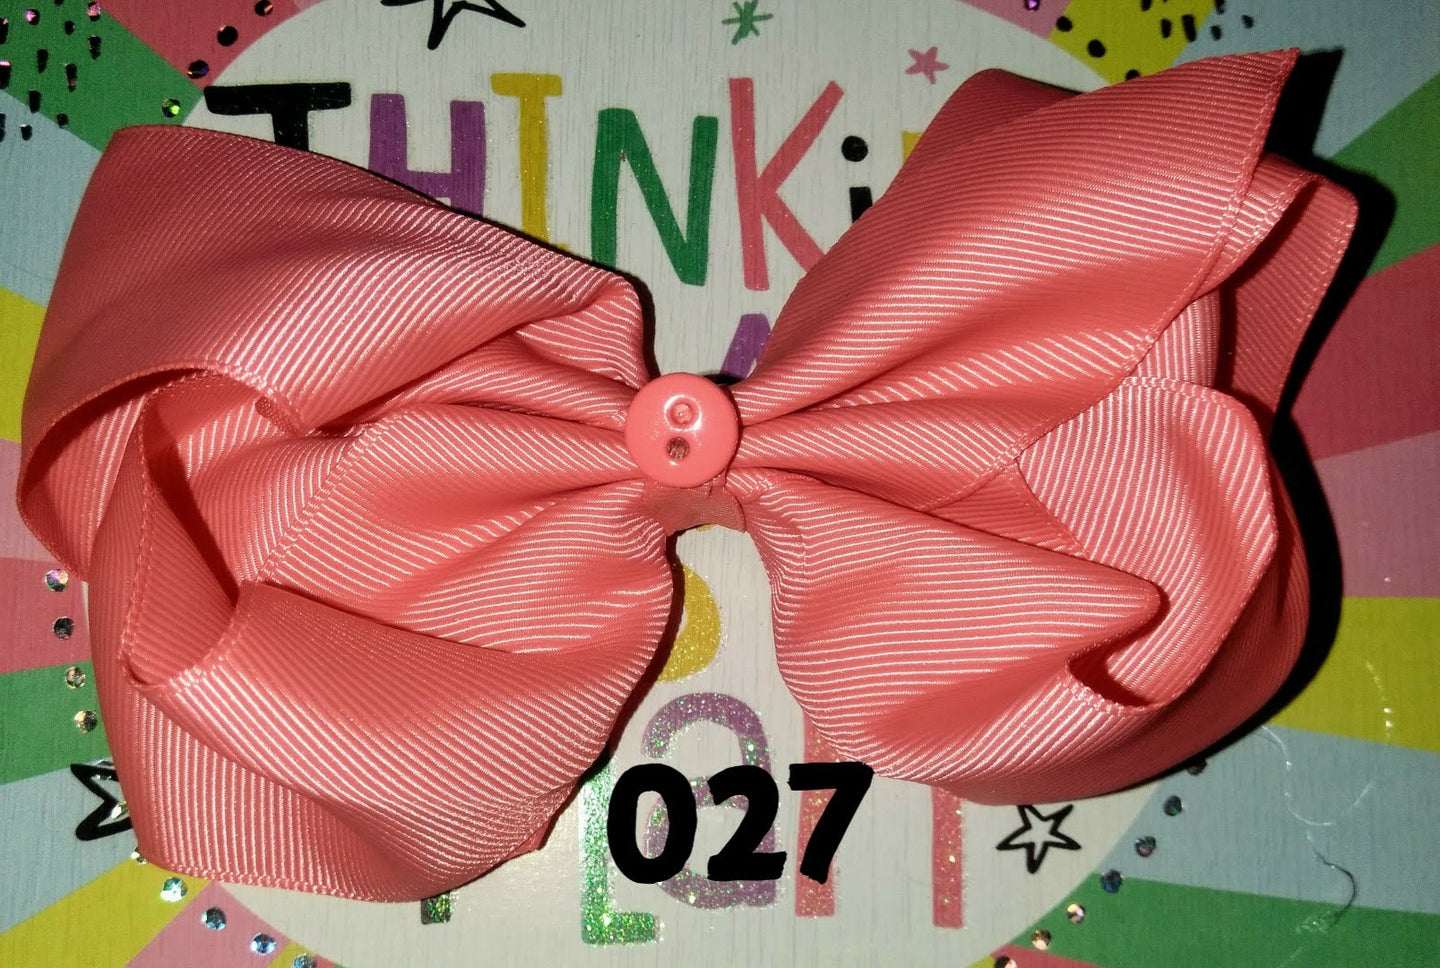 6 Inch Solid Colored Hair Bow with Button